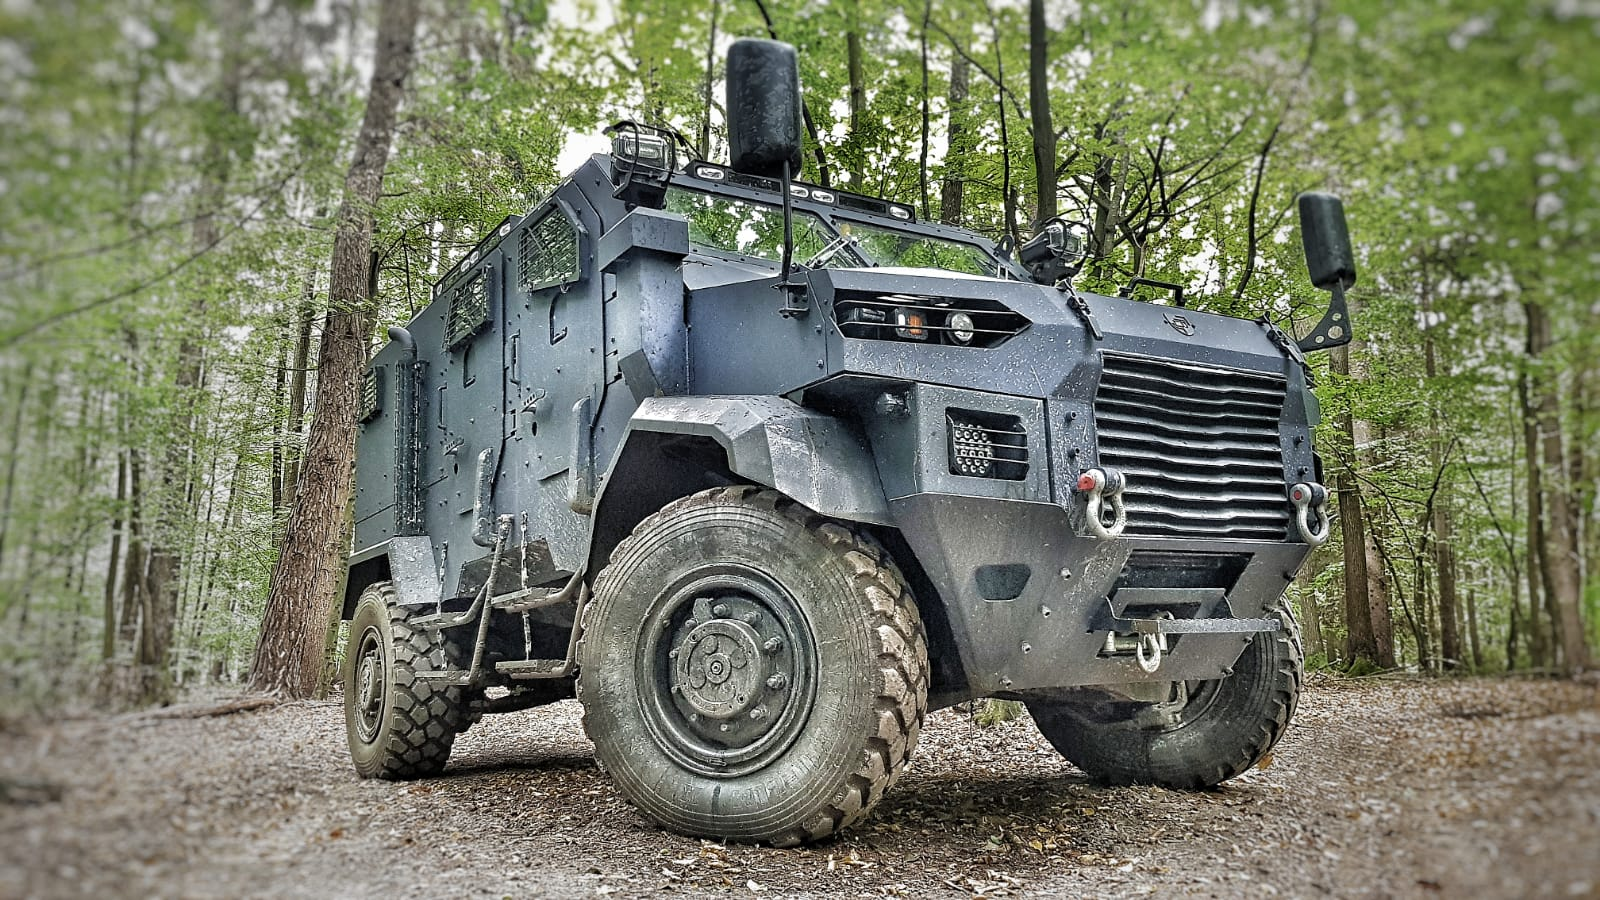 DefTech Armored vehicle HRON parked in the forest.